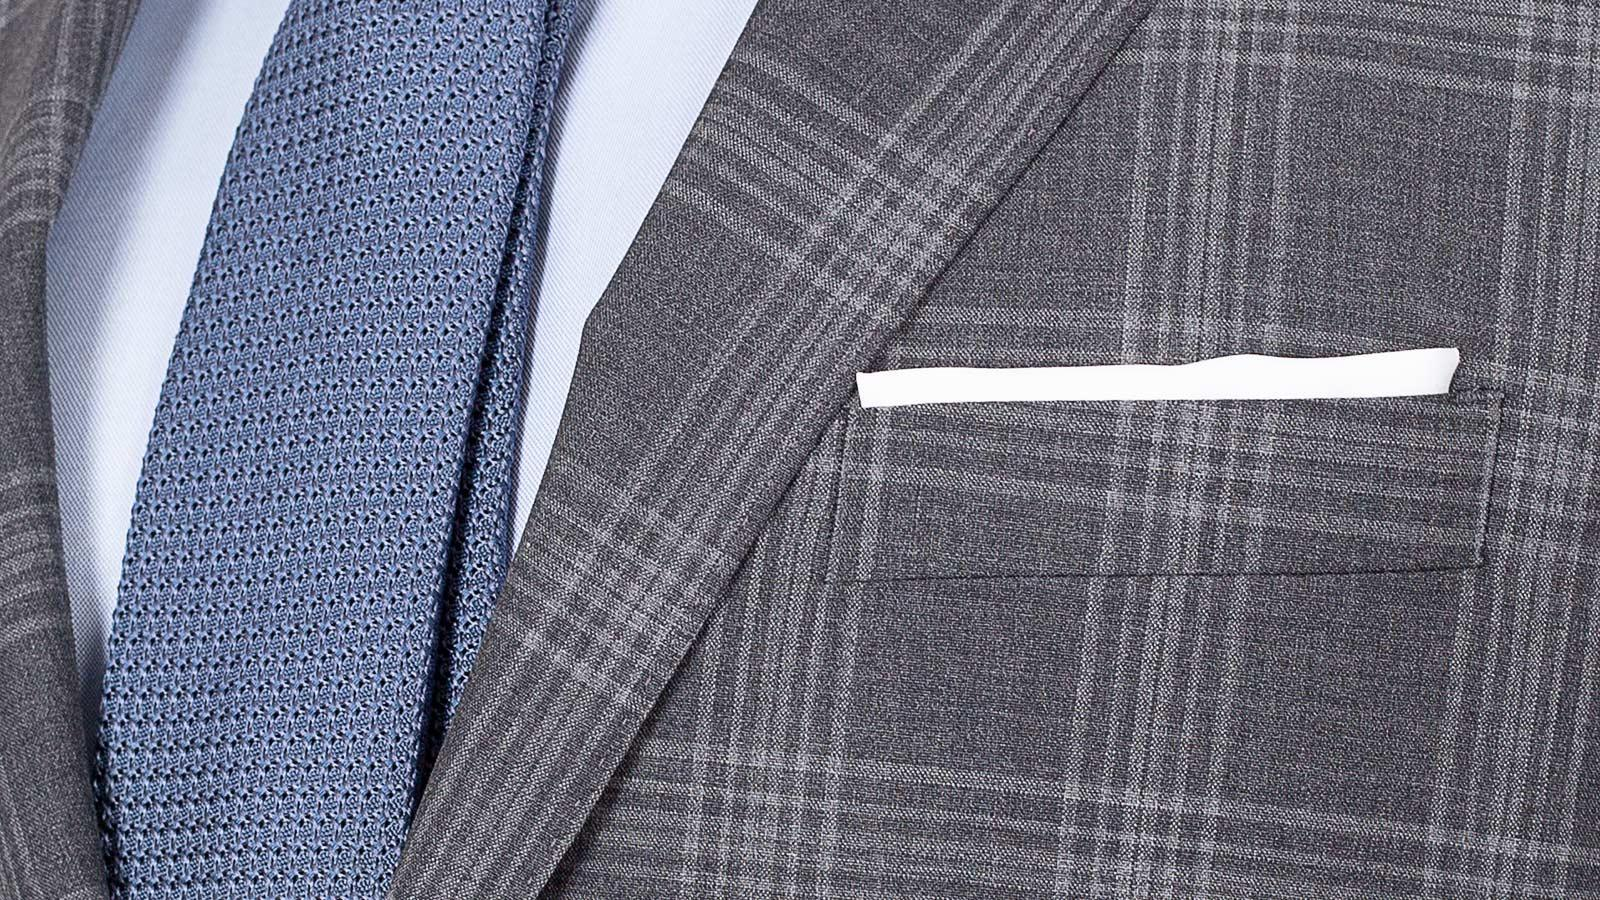 Charcoal Shadow Check Suit - slider image 1